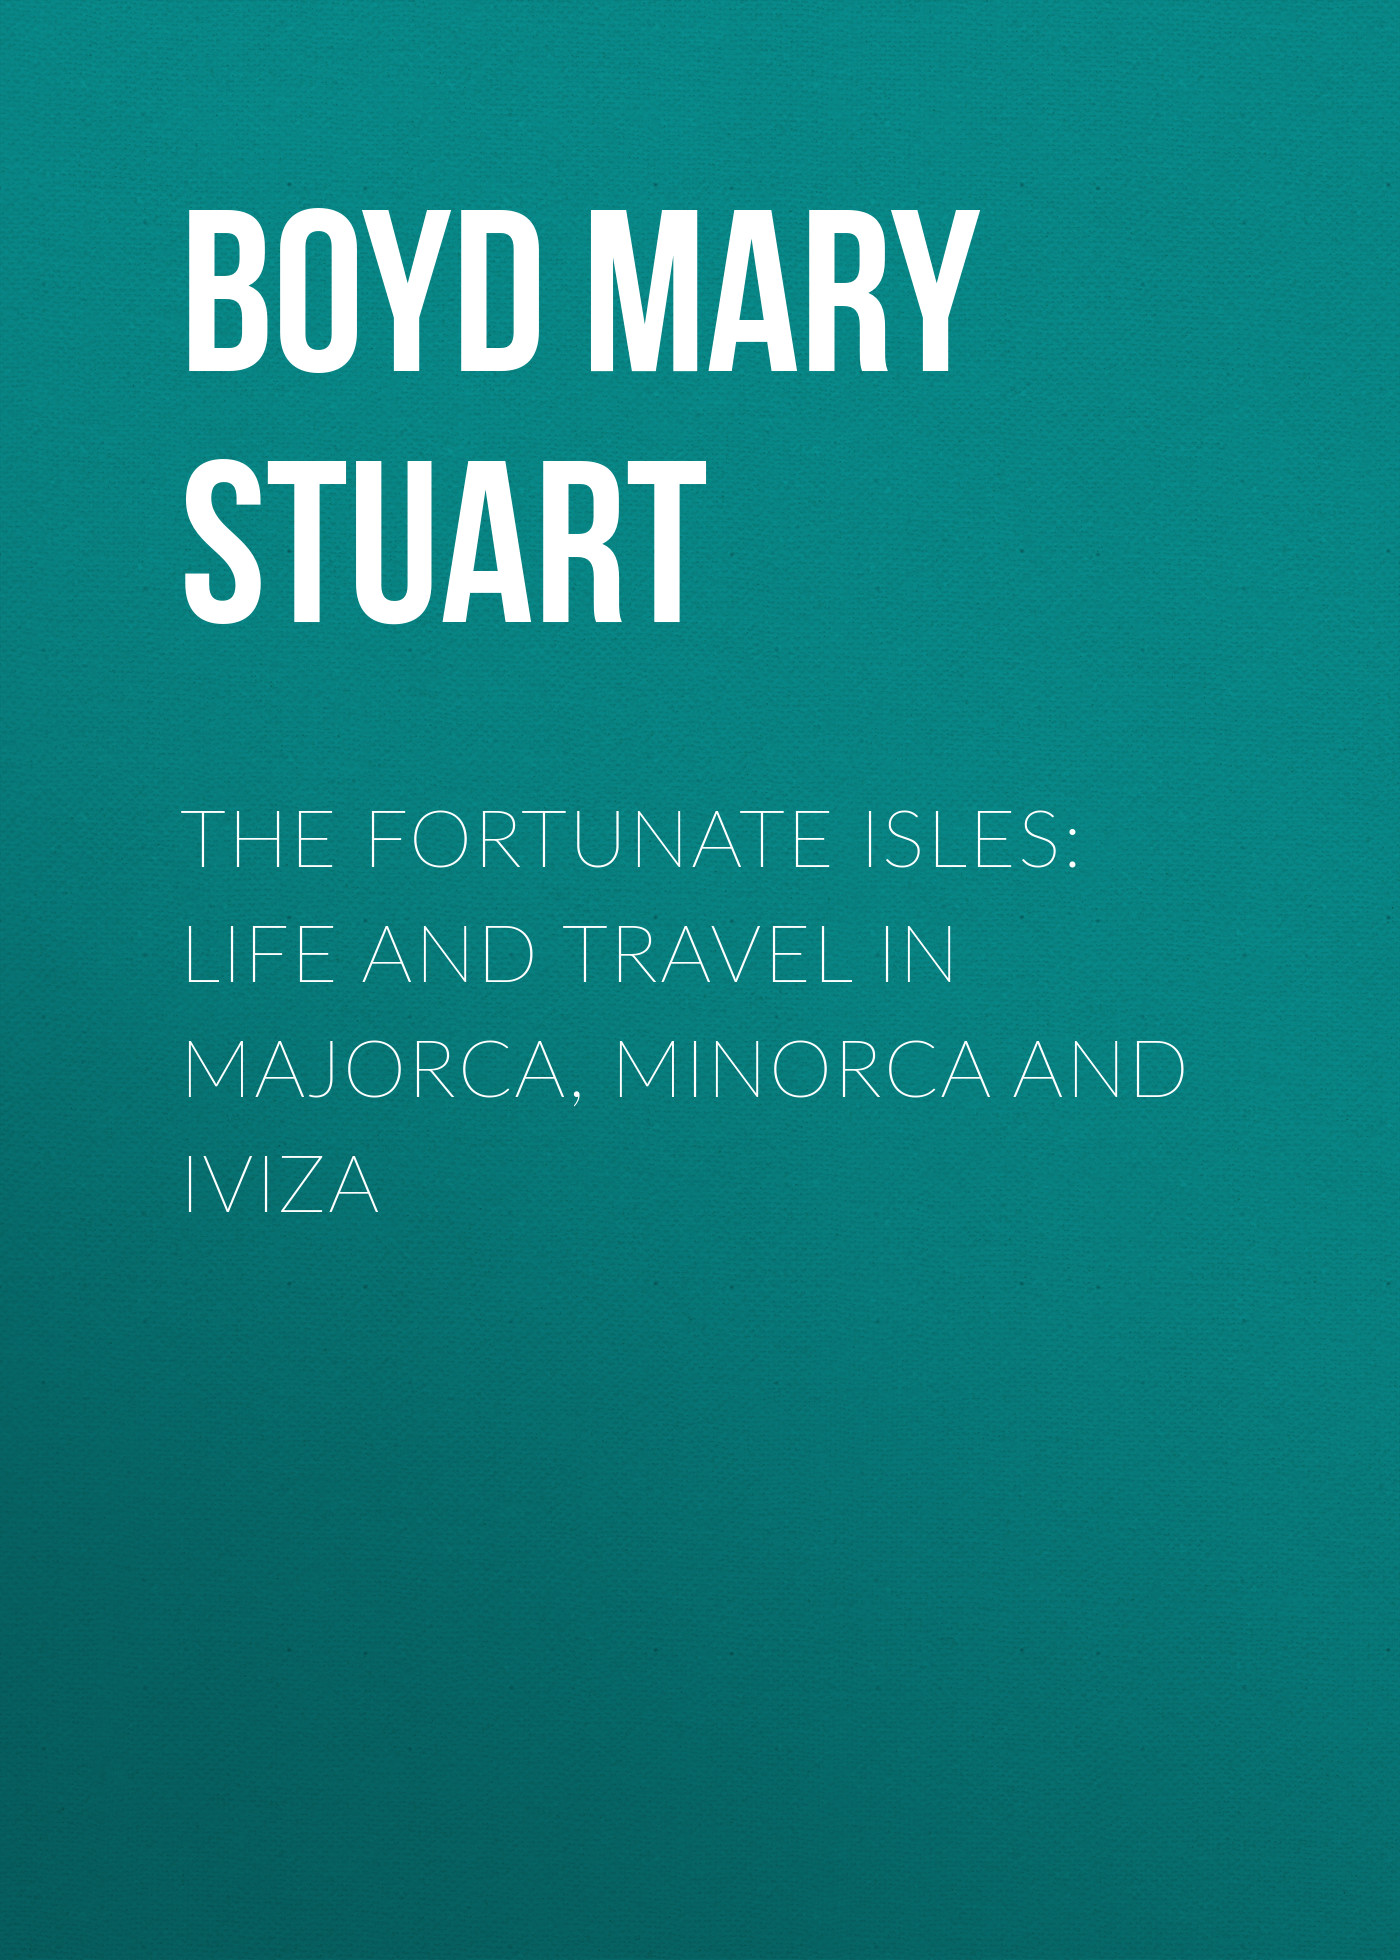 Boyd Mary Stuart The Fortunate Isles: Life and Travel in Majorca, Minorca and Iviza for toyota corolla 2014 2015 2016 2017 abs plastic unpainted primer tail trunk lip wing rear spoiler decoration car accessories